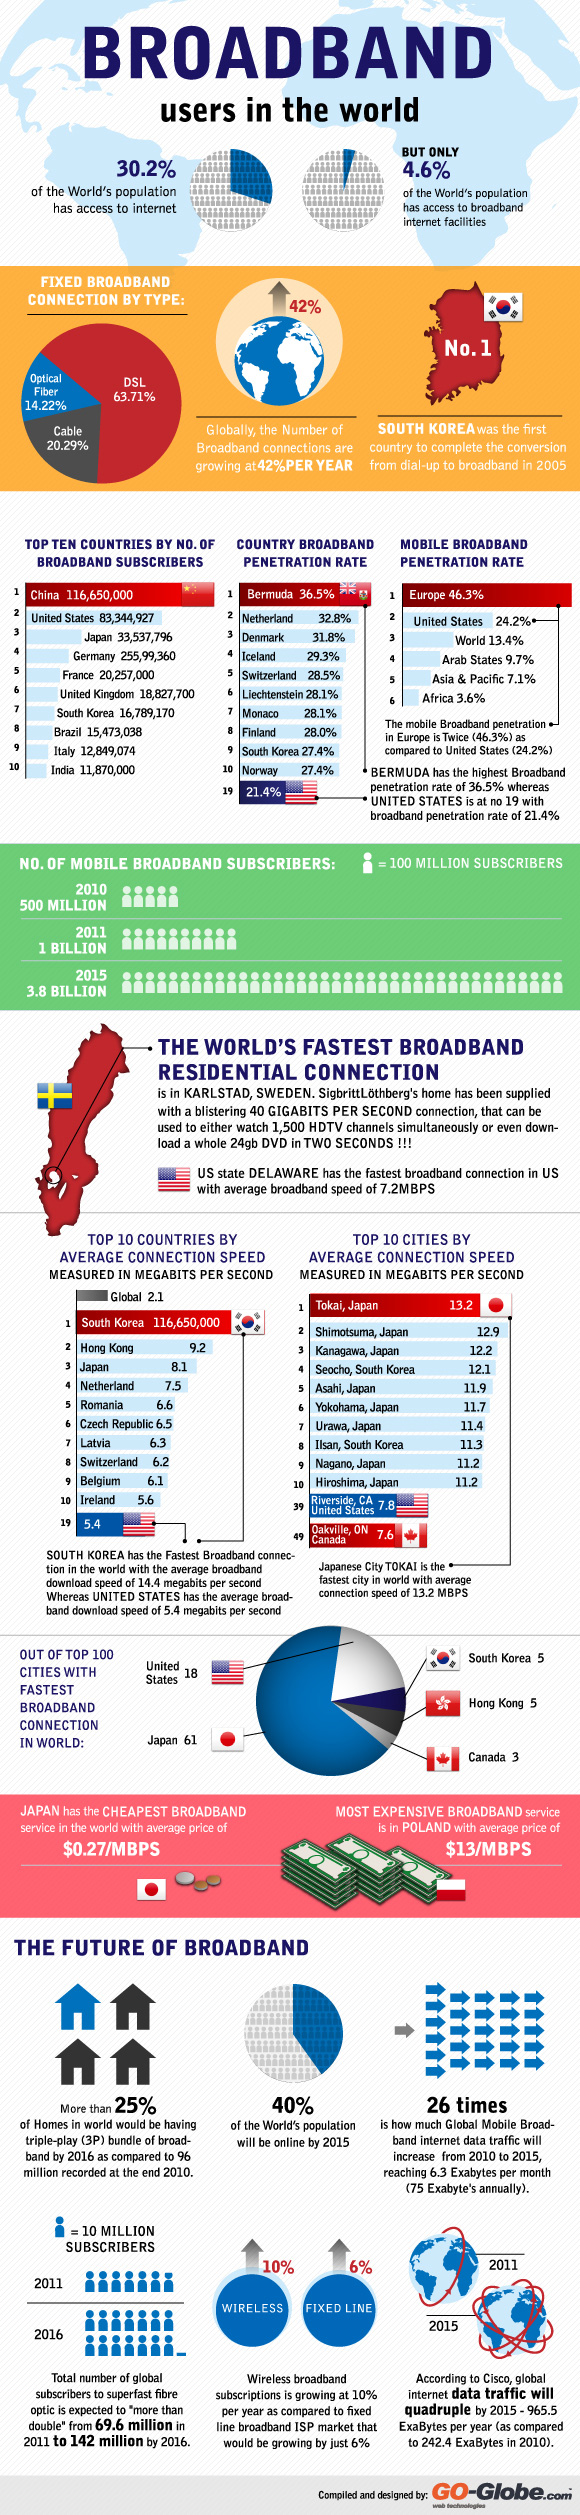 Broadband Users In The World – Facts and Statistics